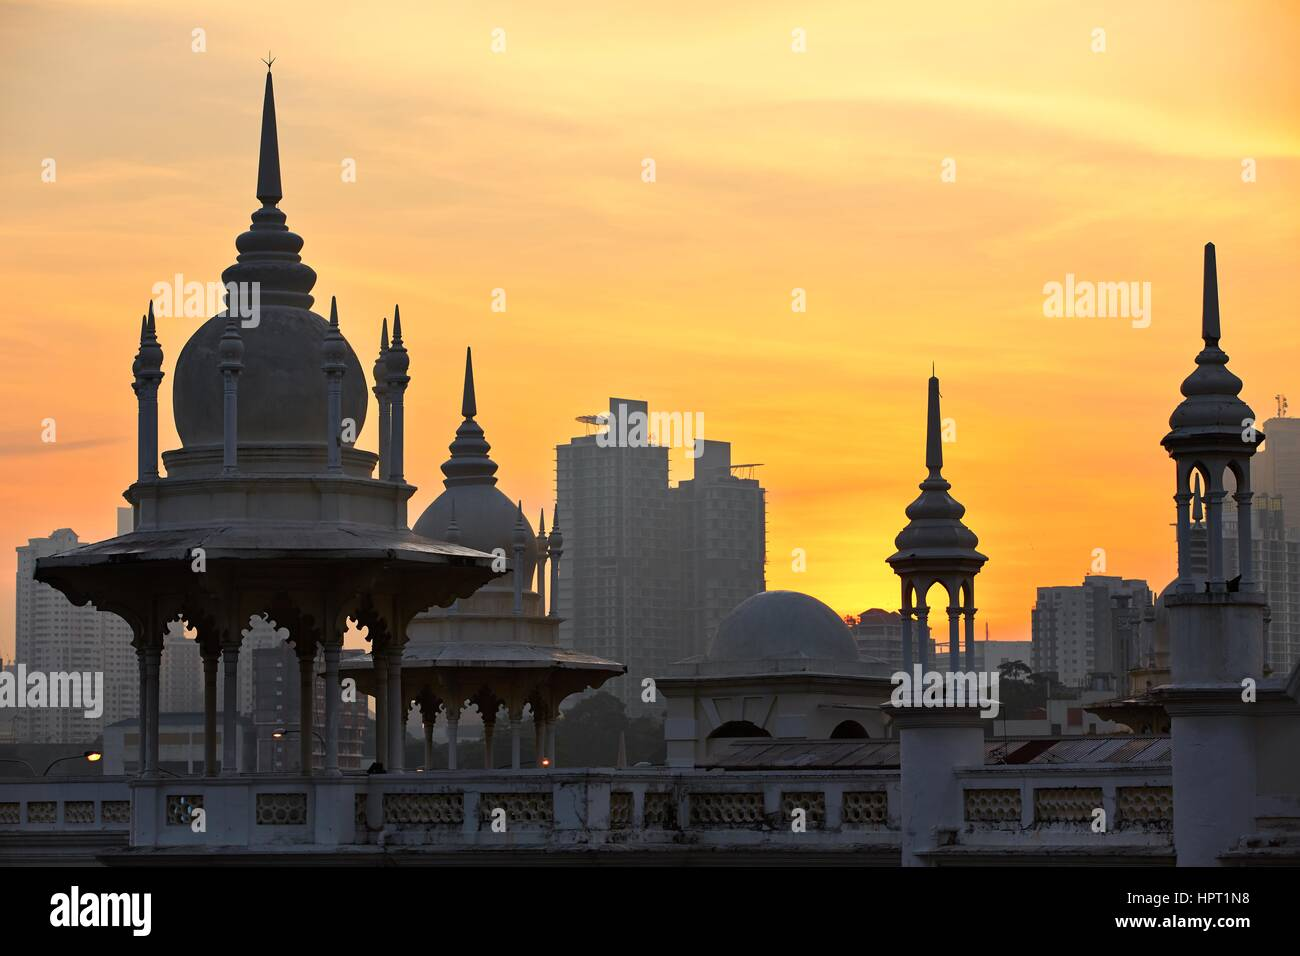 Towers of the historical building railway station in Kuala Lumpur at sunrise. - Stock Image